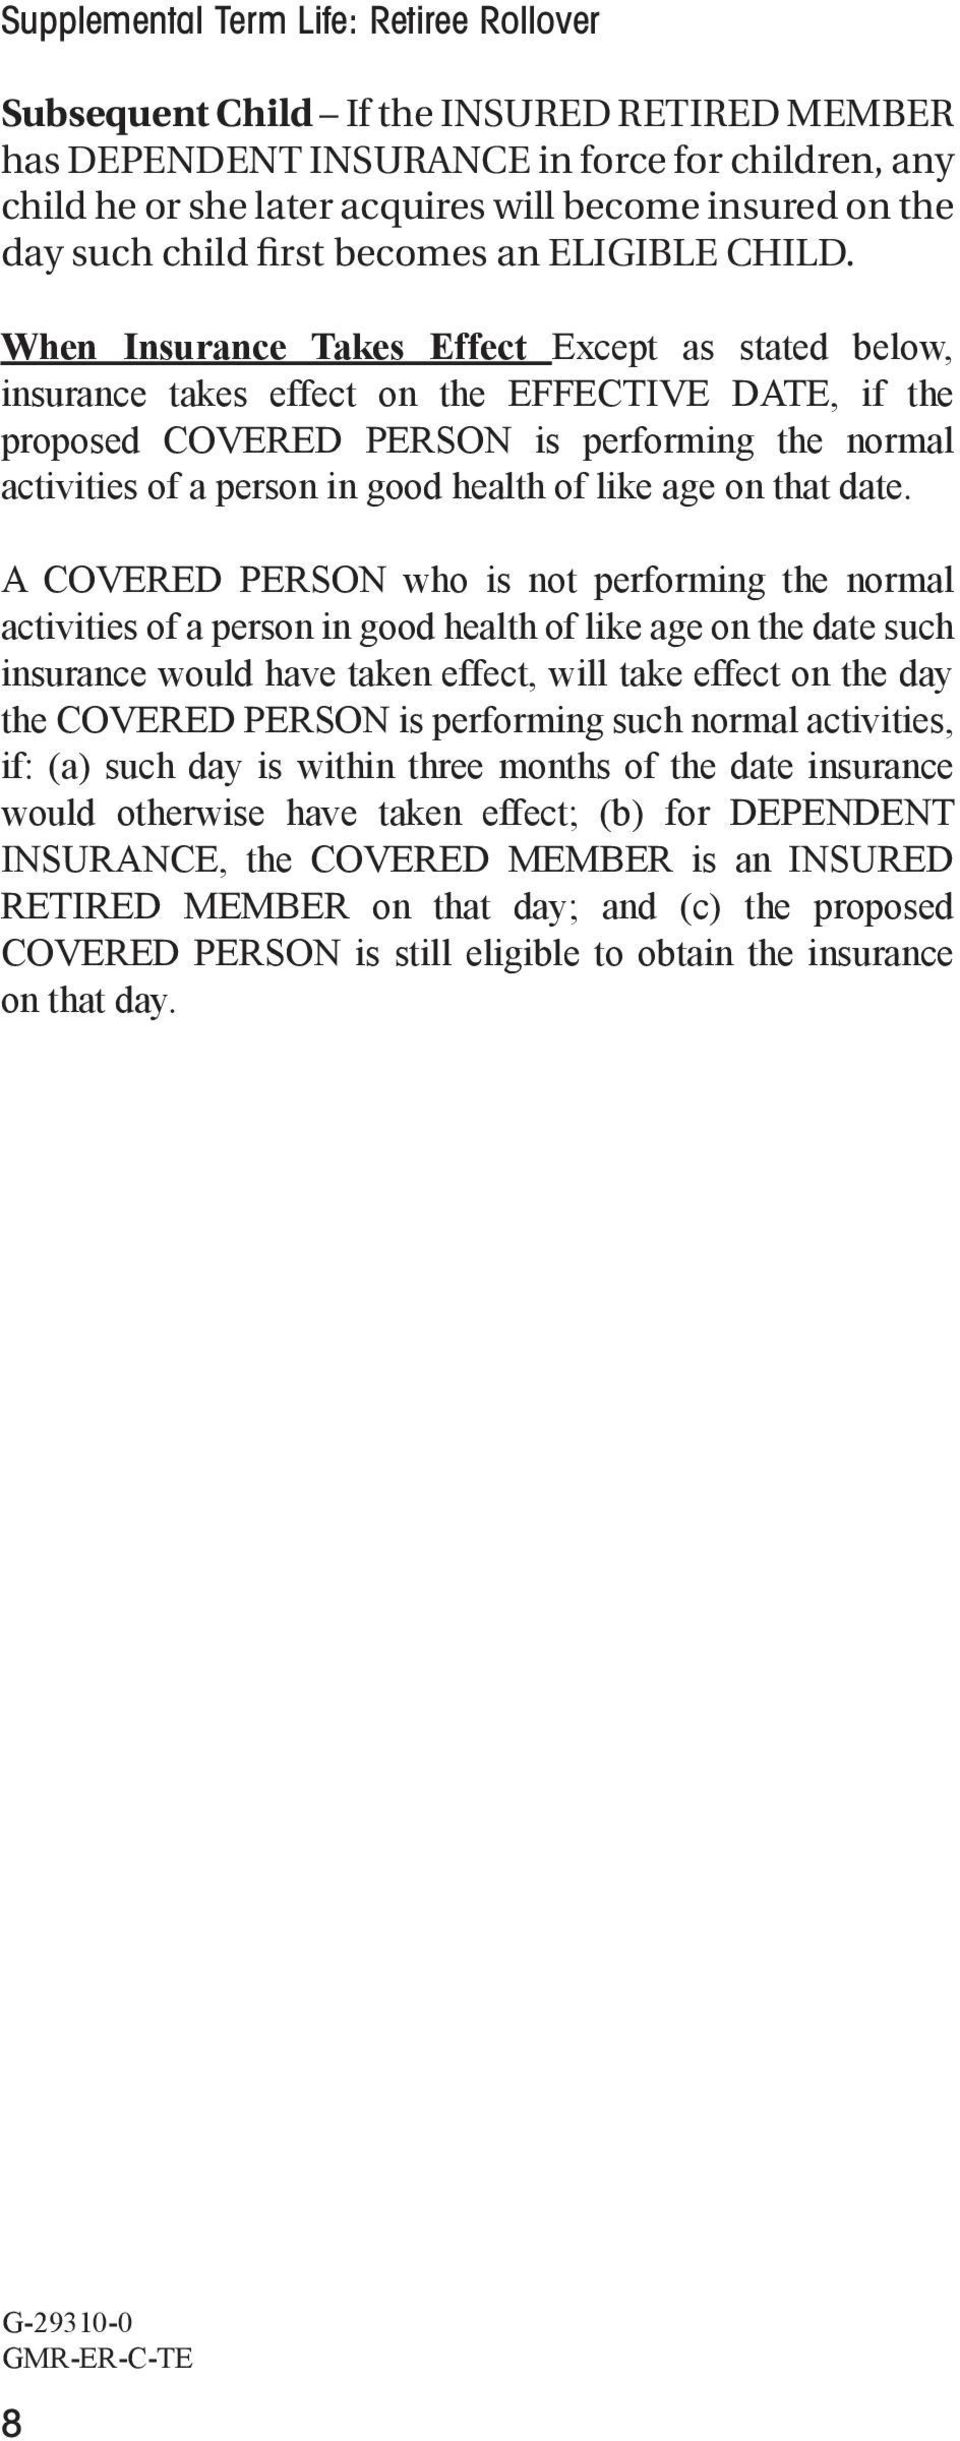 When Insurance Takes Effect Except as stated below, insurance takes effect on the EFFECTIVE DATE, if the proposed COVERED PERSON is performing the normal activities of a person in good health of like